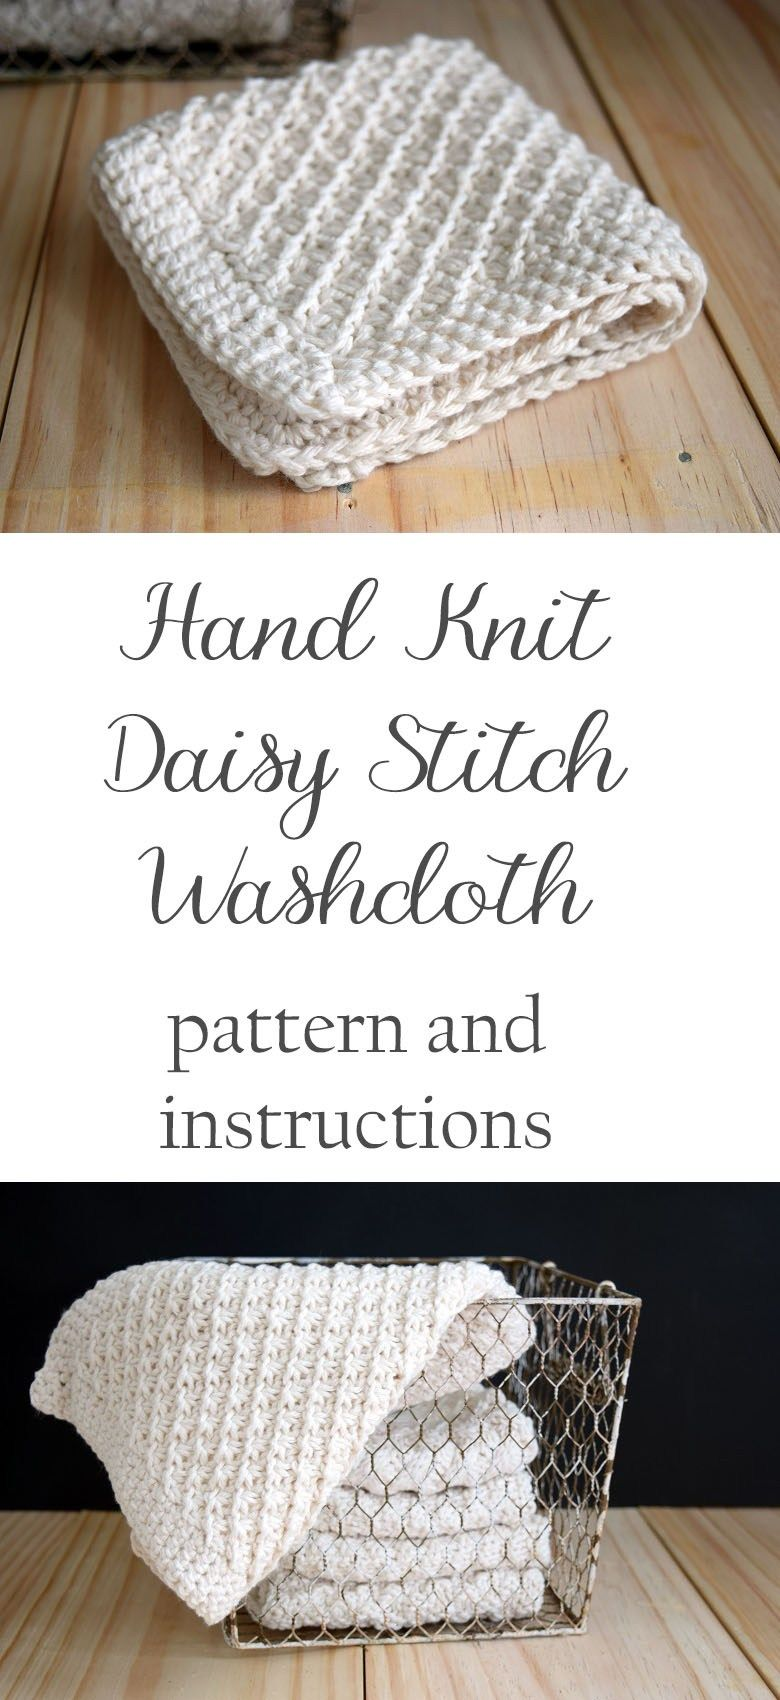 Daisy Stitch Knit Washcloth Pattern | Knitting/Crochet/Woolfelt ...